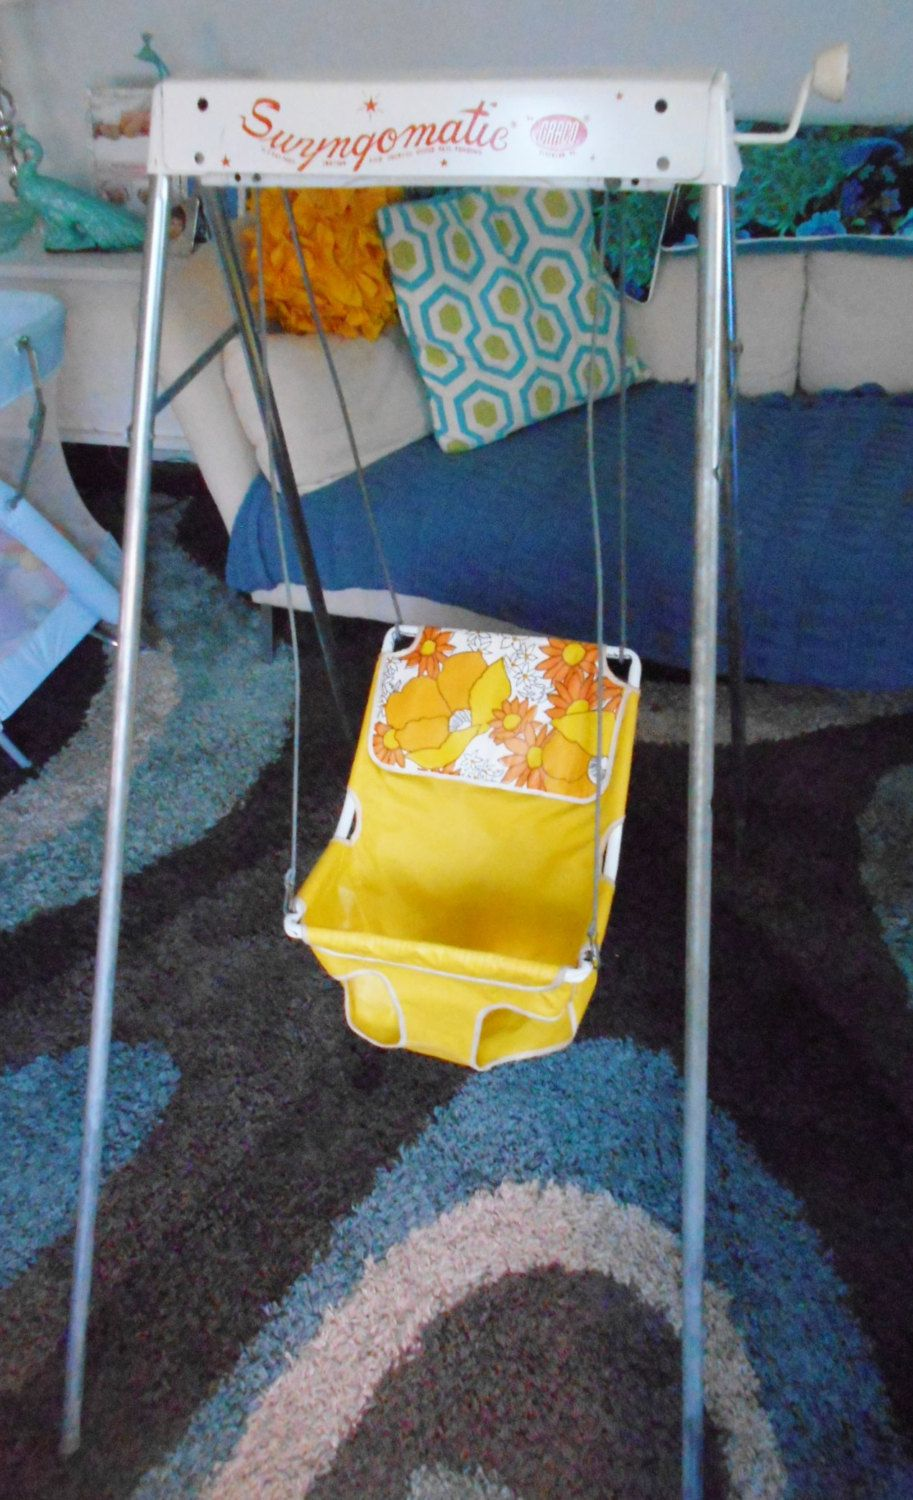 Vintage Baby Swing/ Swyngomatic by Graco Circa 1970's Yellow and Orange by RadiogirlCarolyn on Etsy